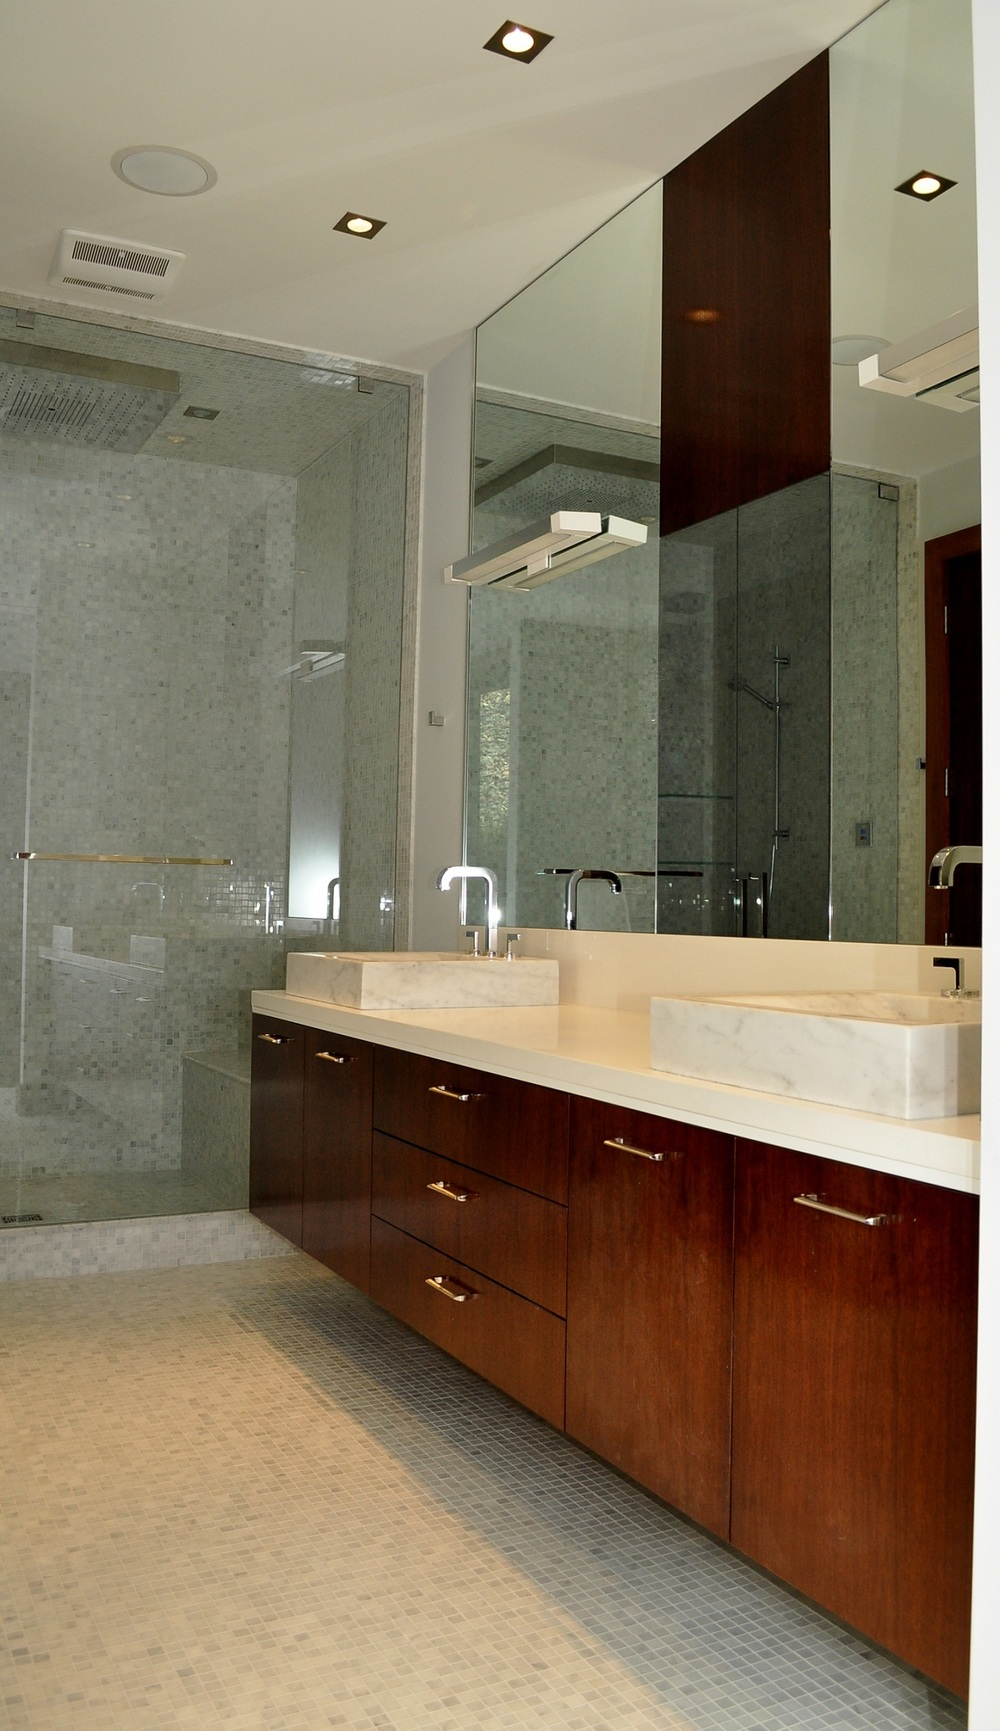 mahogany-wood-custom-floating-modern-bath-vanity-millwork.jpg.JPG